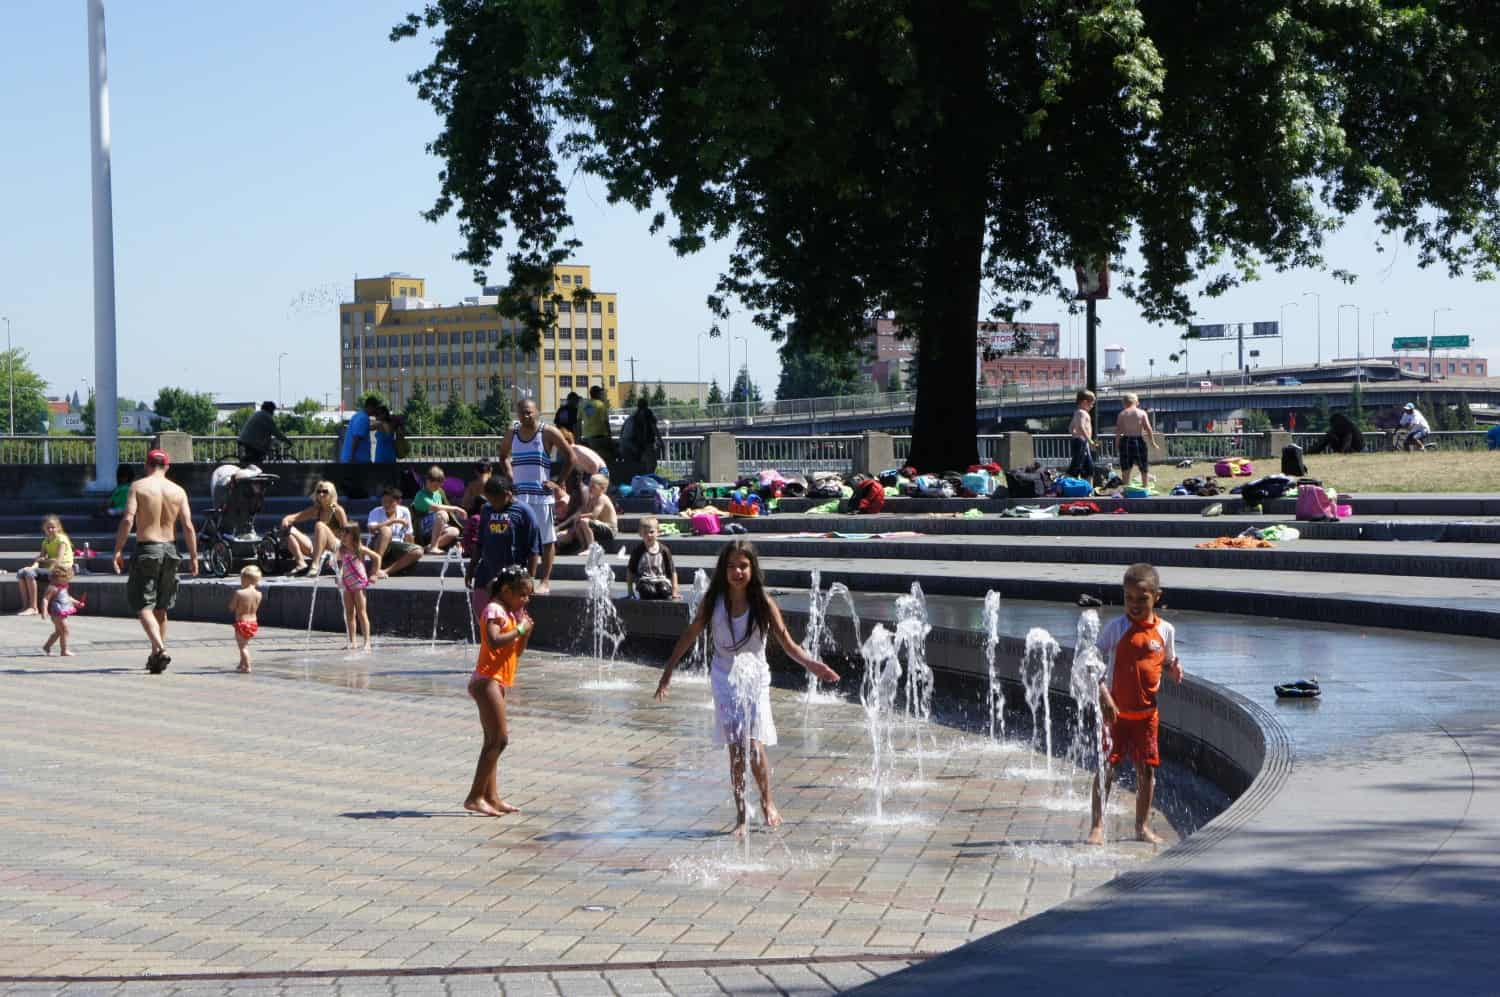 Kids In Fountain - Portland, Oregon